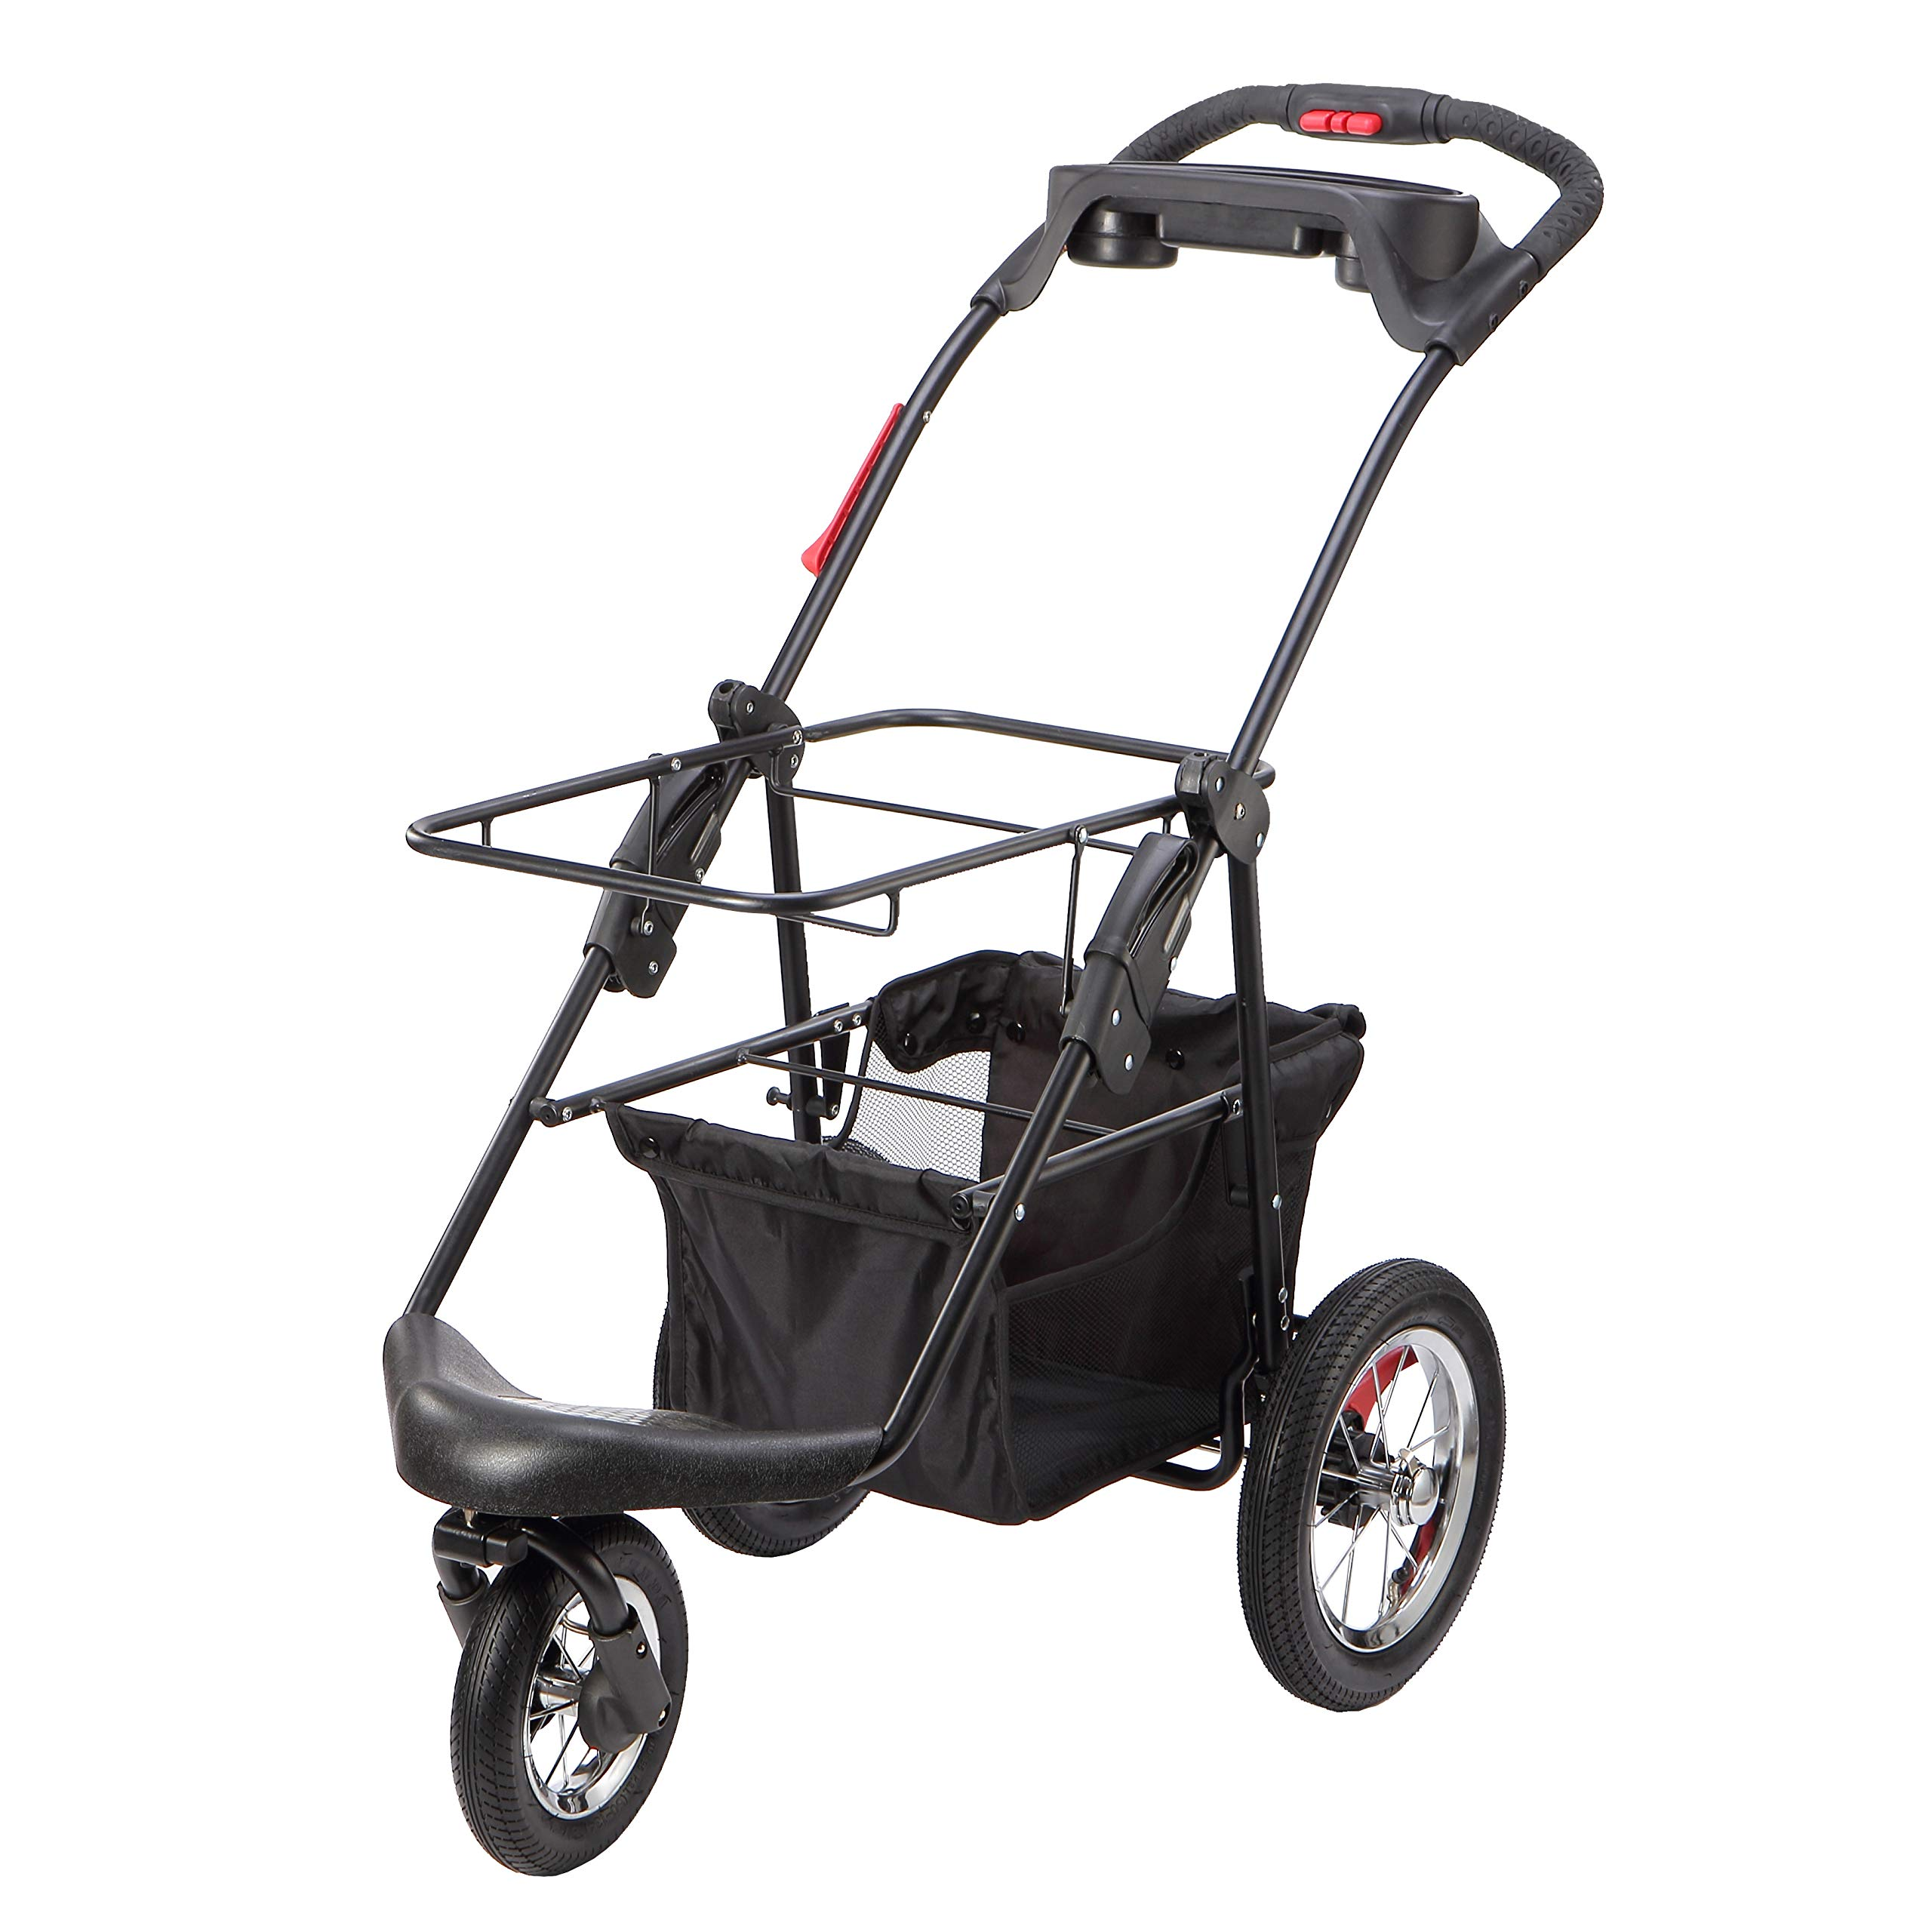 Petique Pet Stroller, Black, One Size by Petique